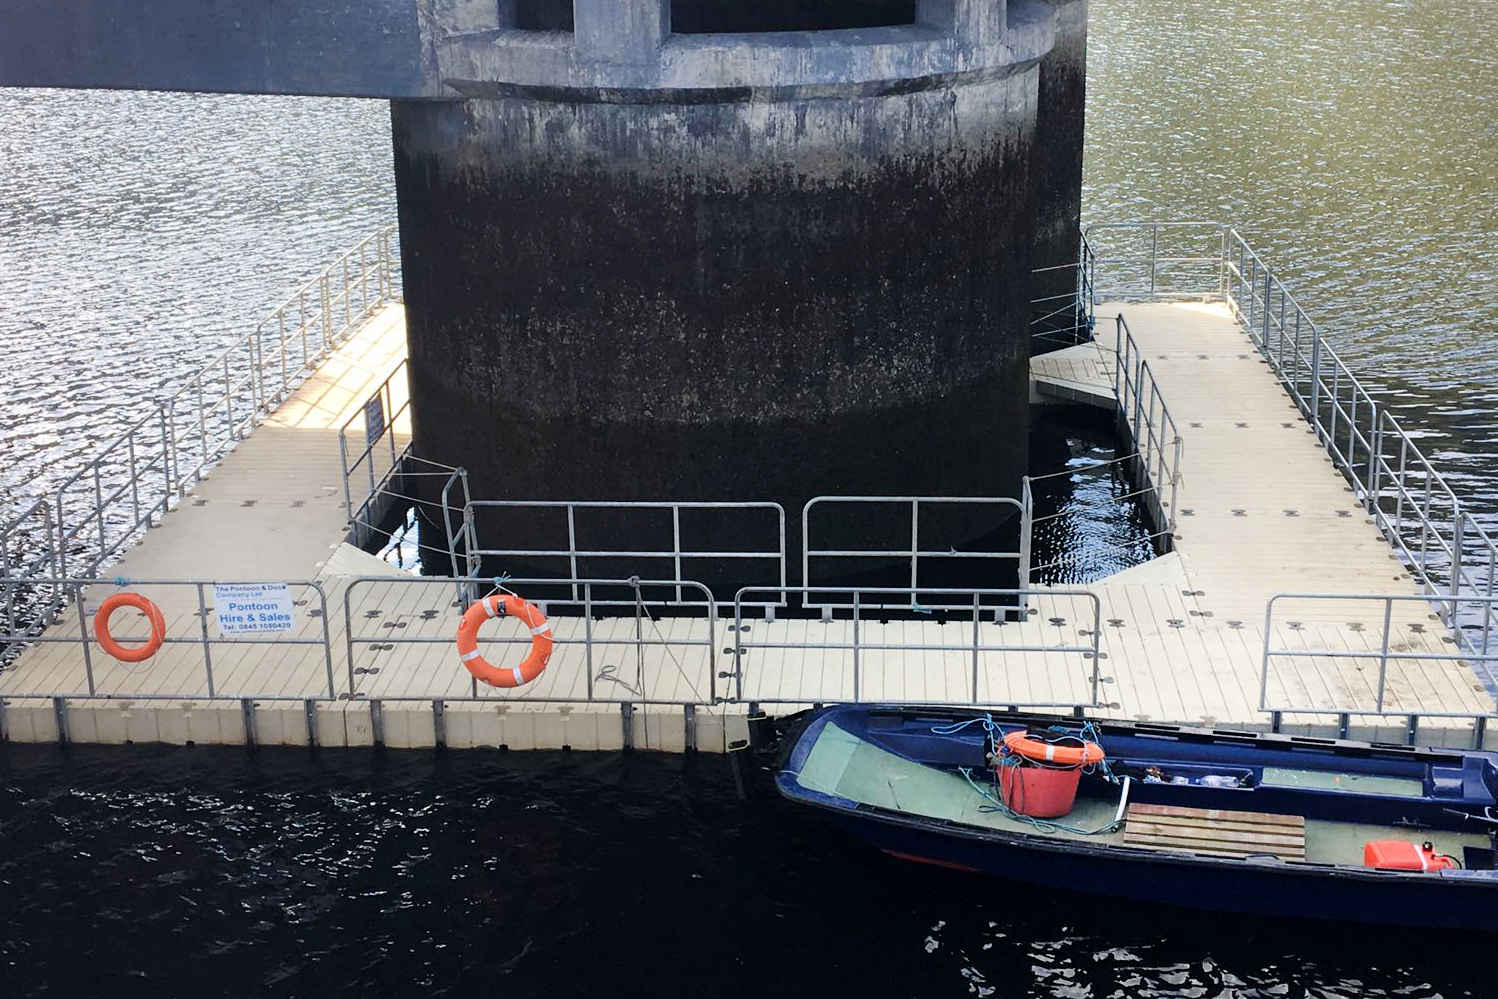 COMMERCIAL PONTOON & SAFETY BOAT HIRE